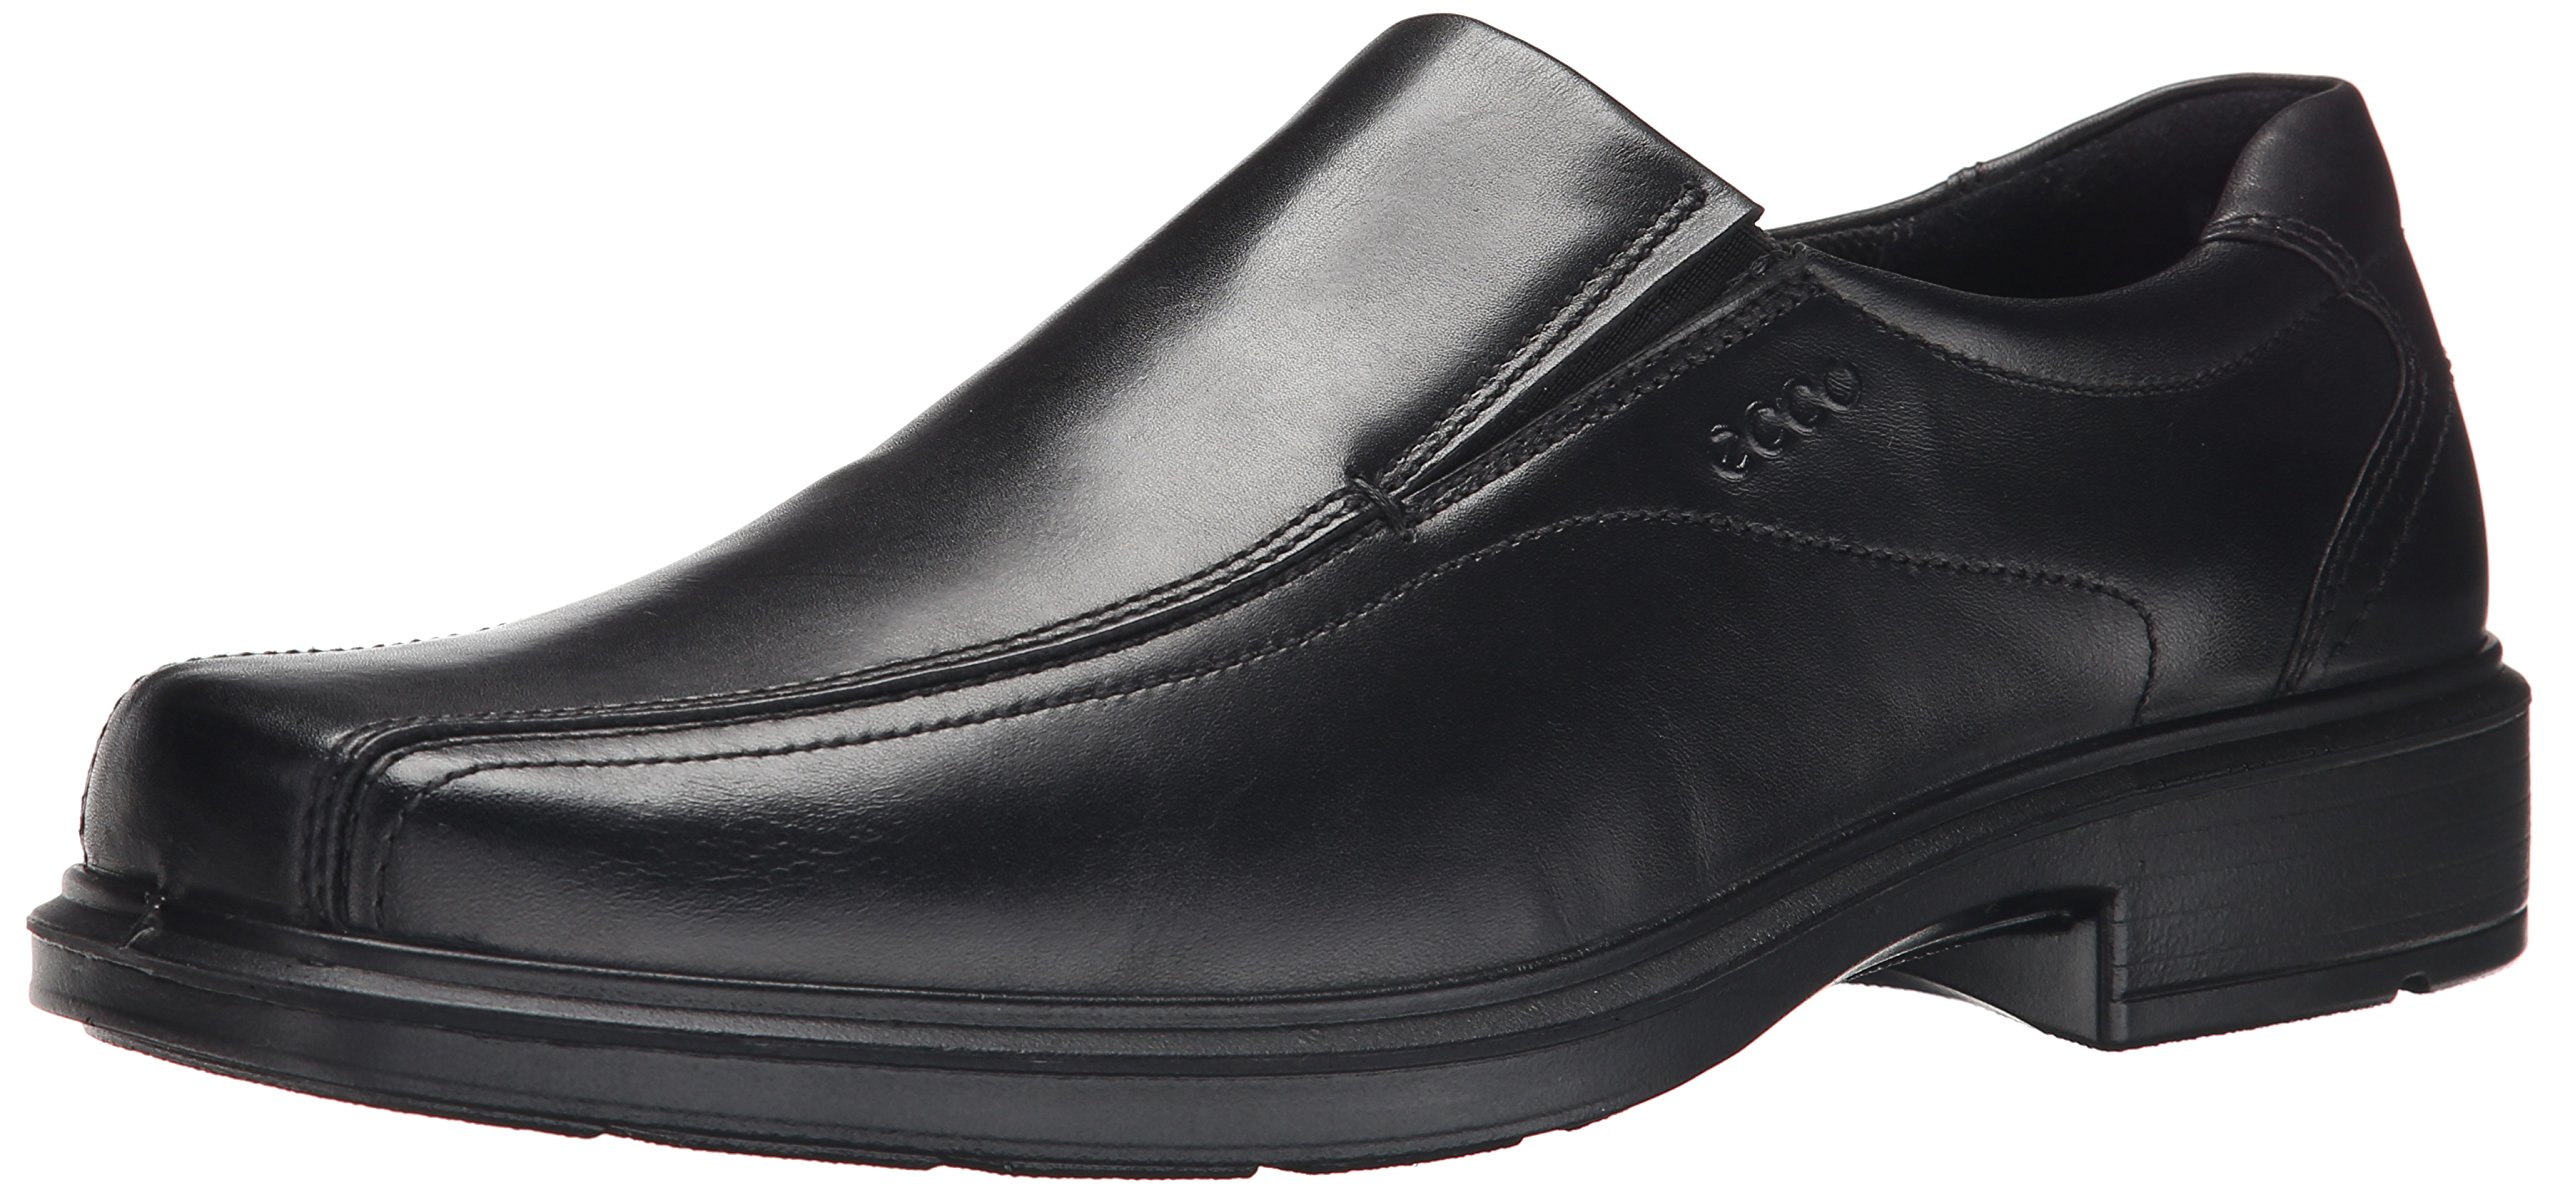 ECCO Men's Helsinki Slip-On,Black,47 EU (US Men's 13-13.5 M)